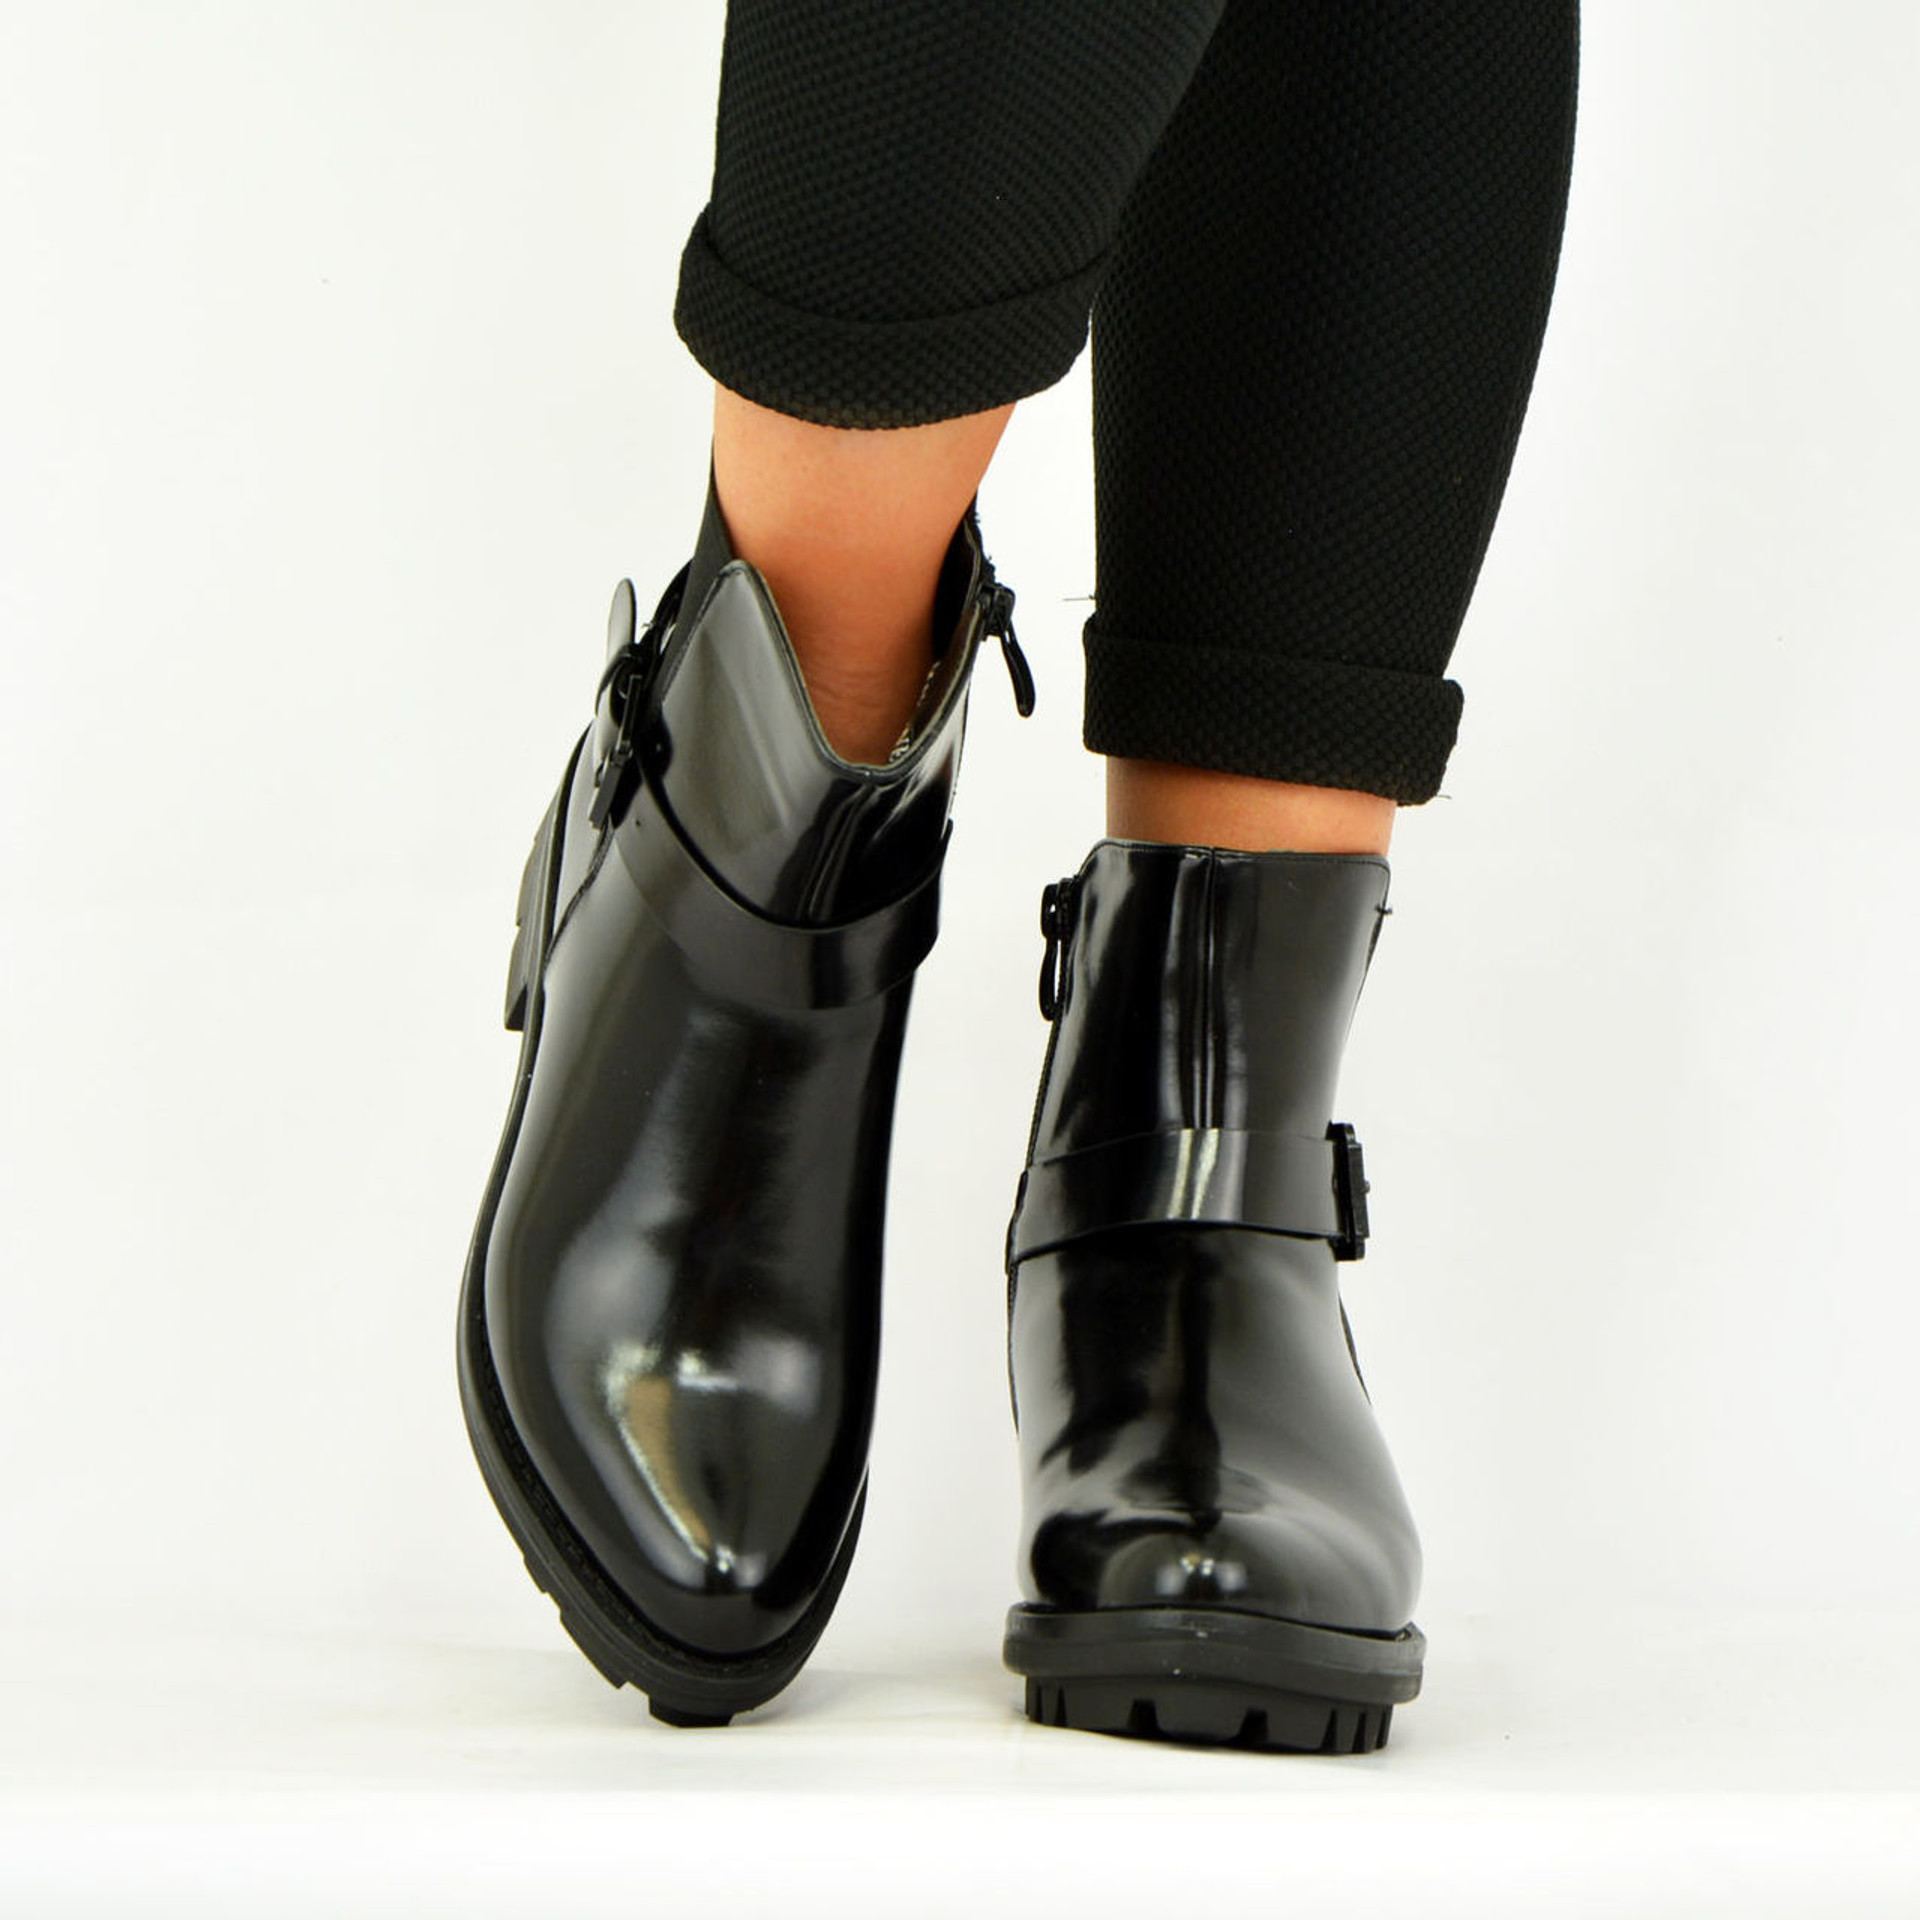 Black Patent Cleated Sole Ankle Boots